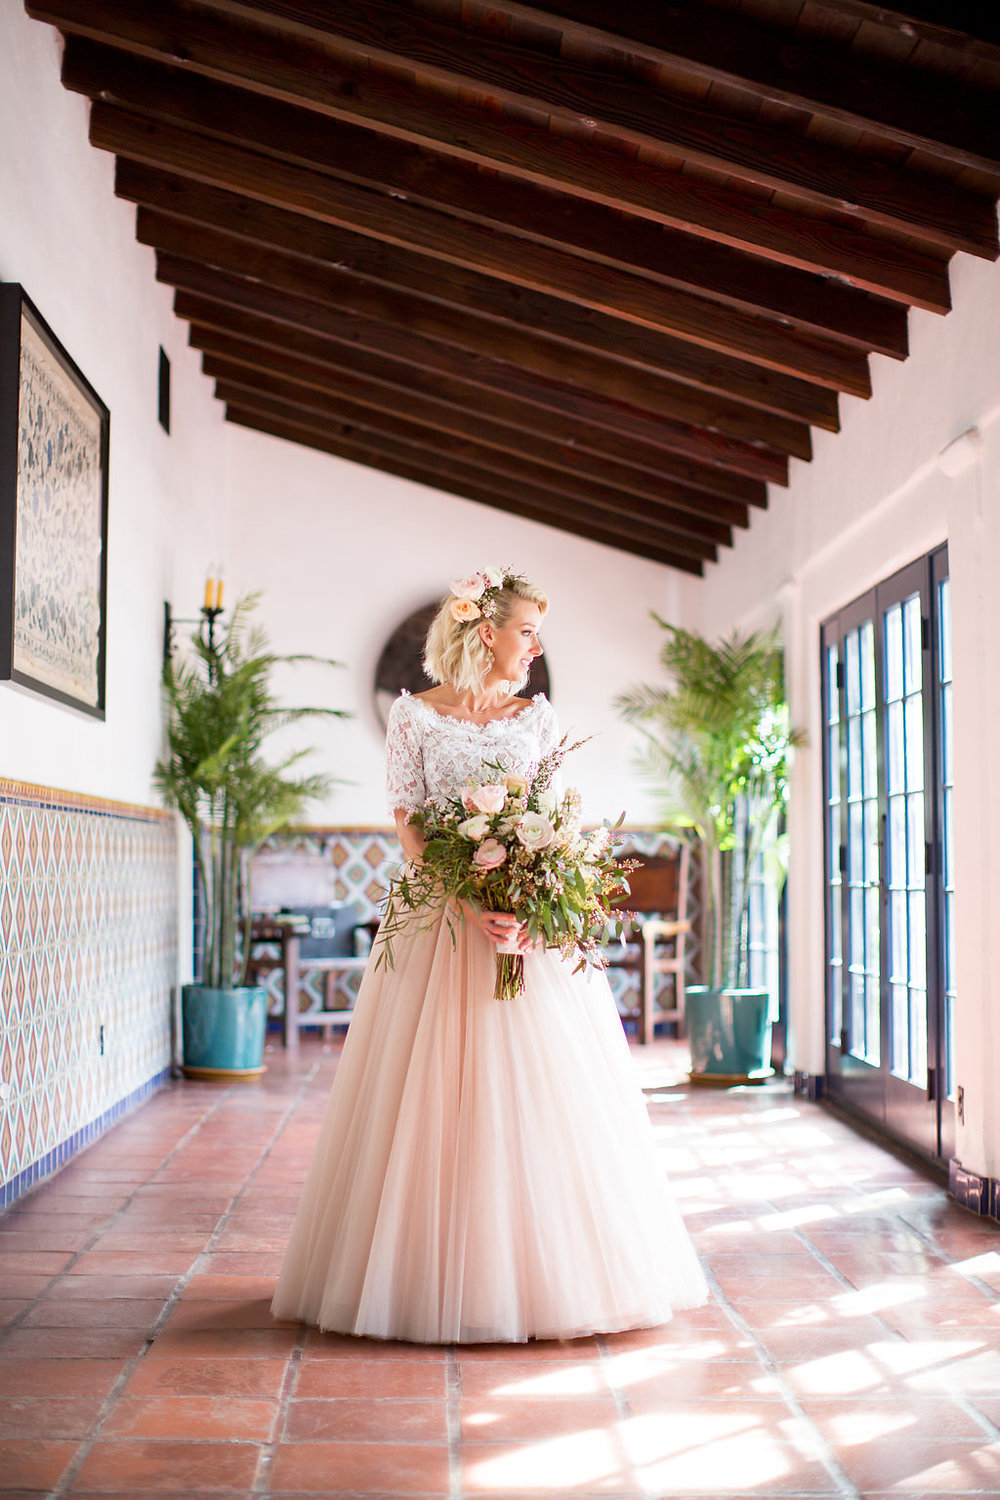 LA CHUREYA ESTATE WEDDING_BETSI EWING STUDIO 245.JPG